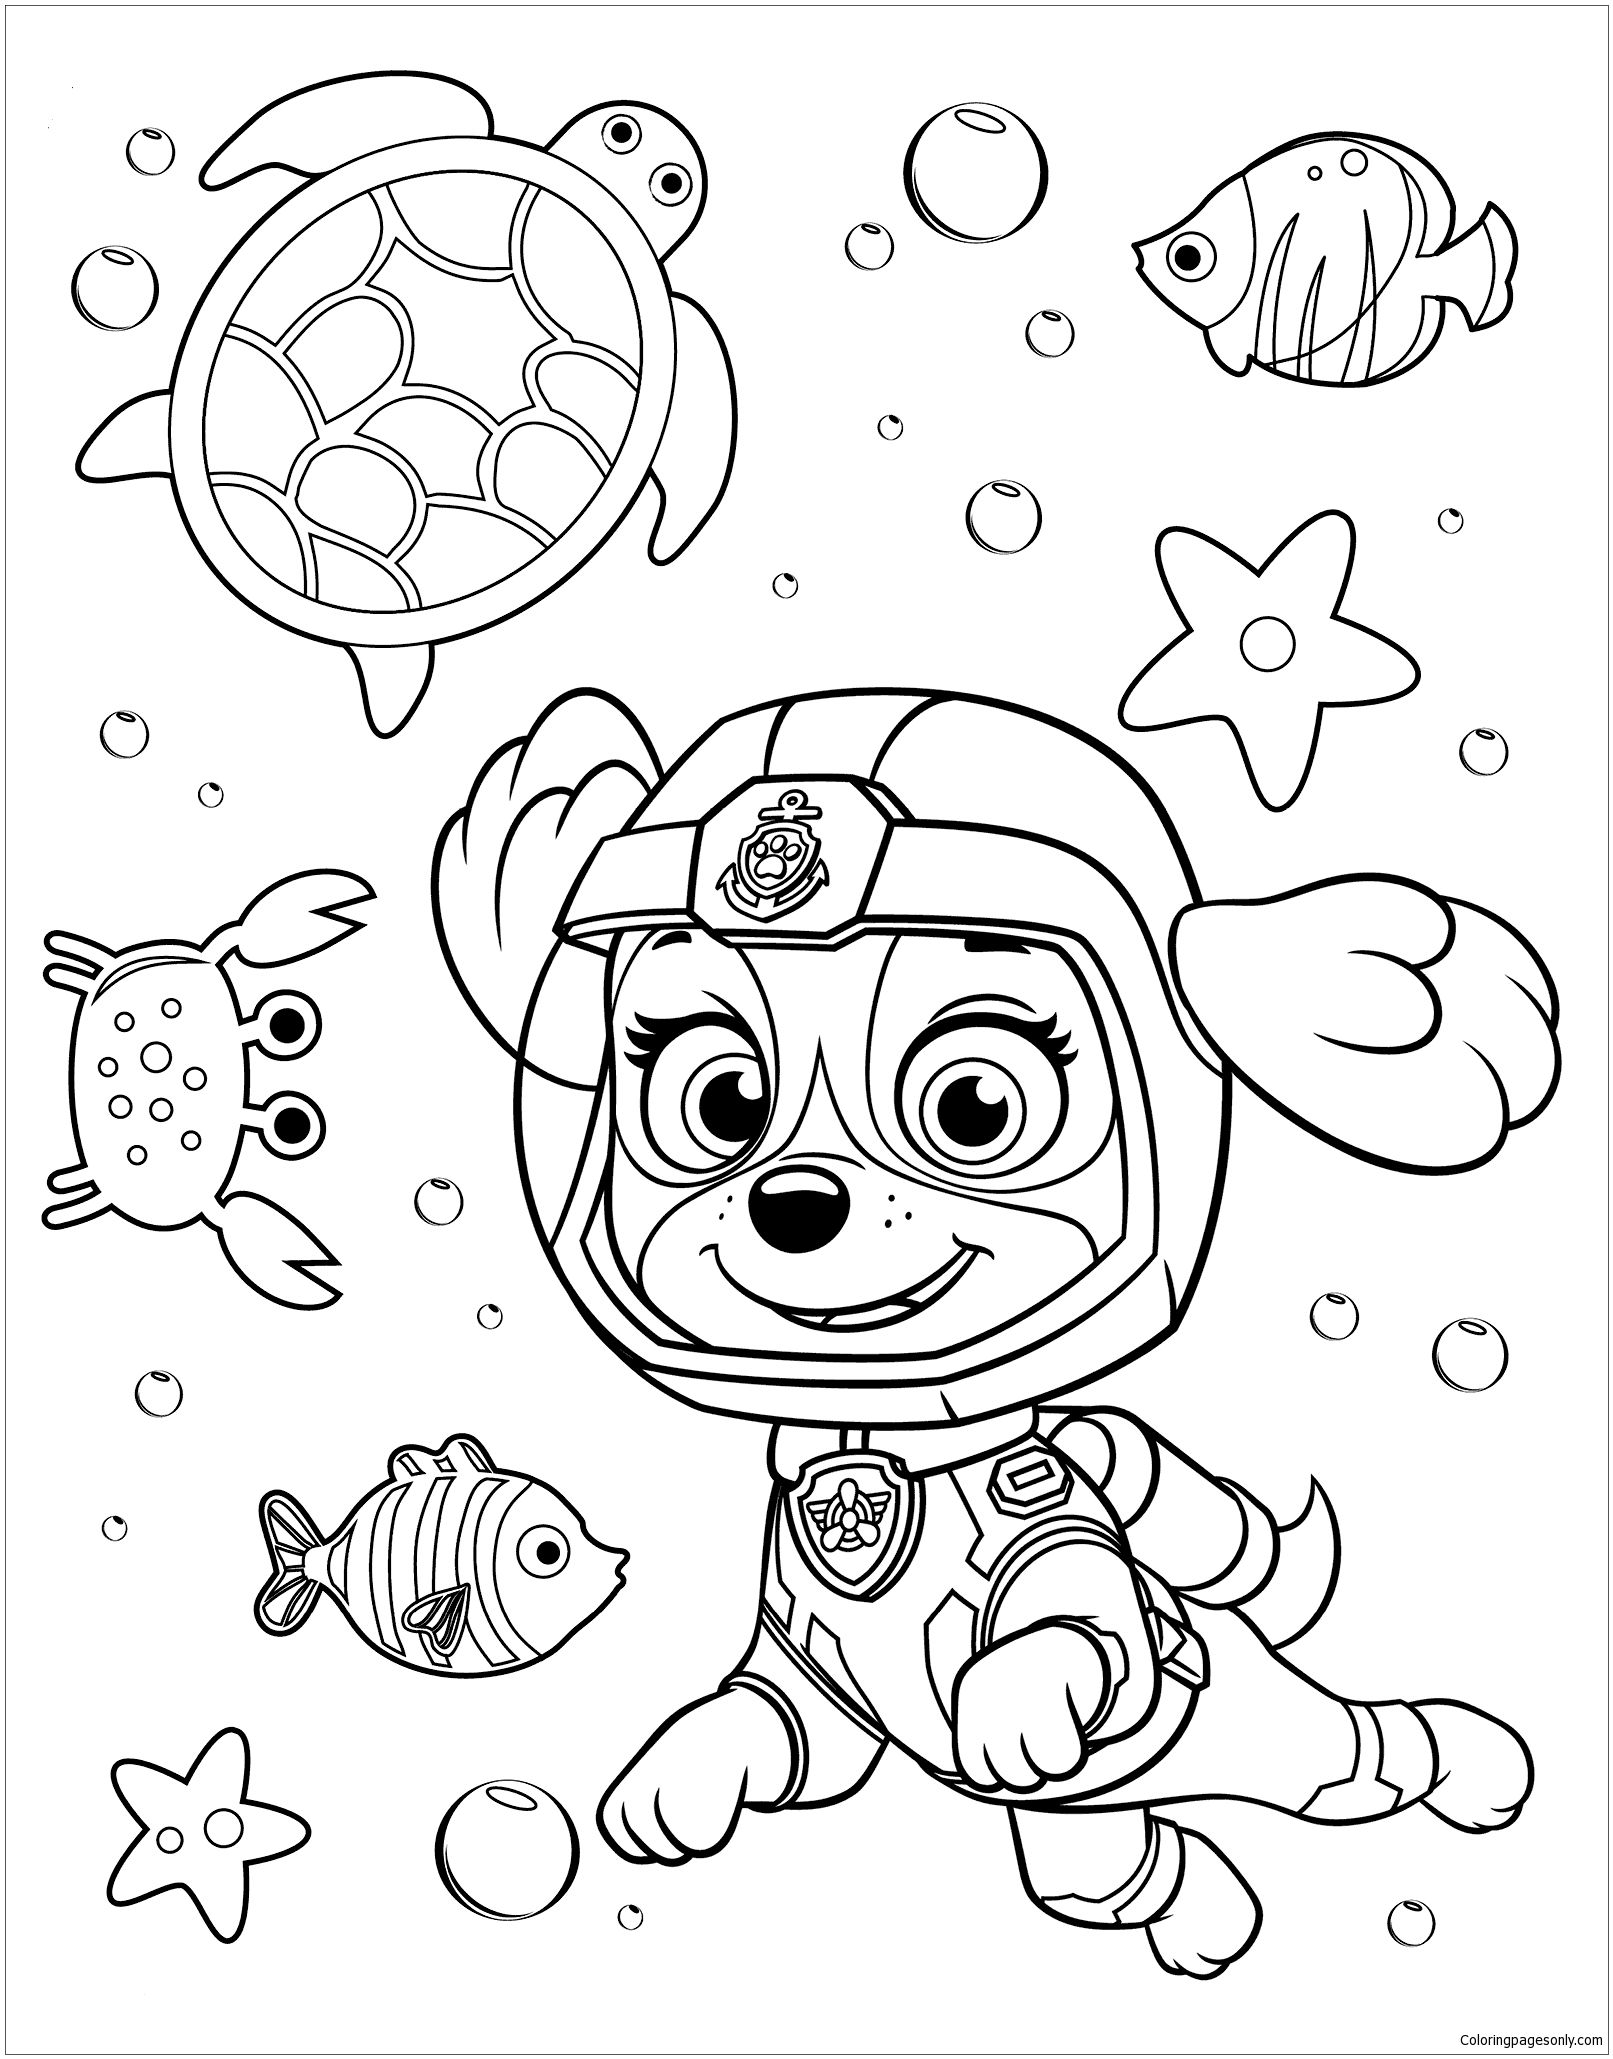 Paw Patrol Sky Ausmalbilder : Paw Patrol Rubble Underwater 2 Coloring Page Coloring Pinterest